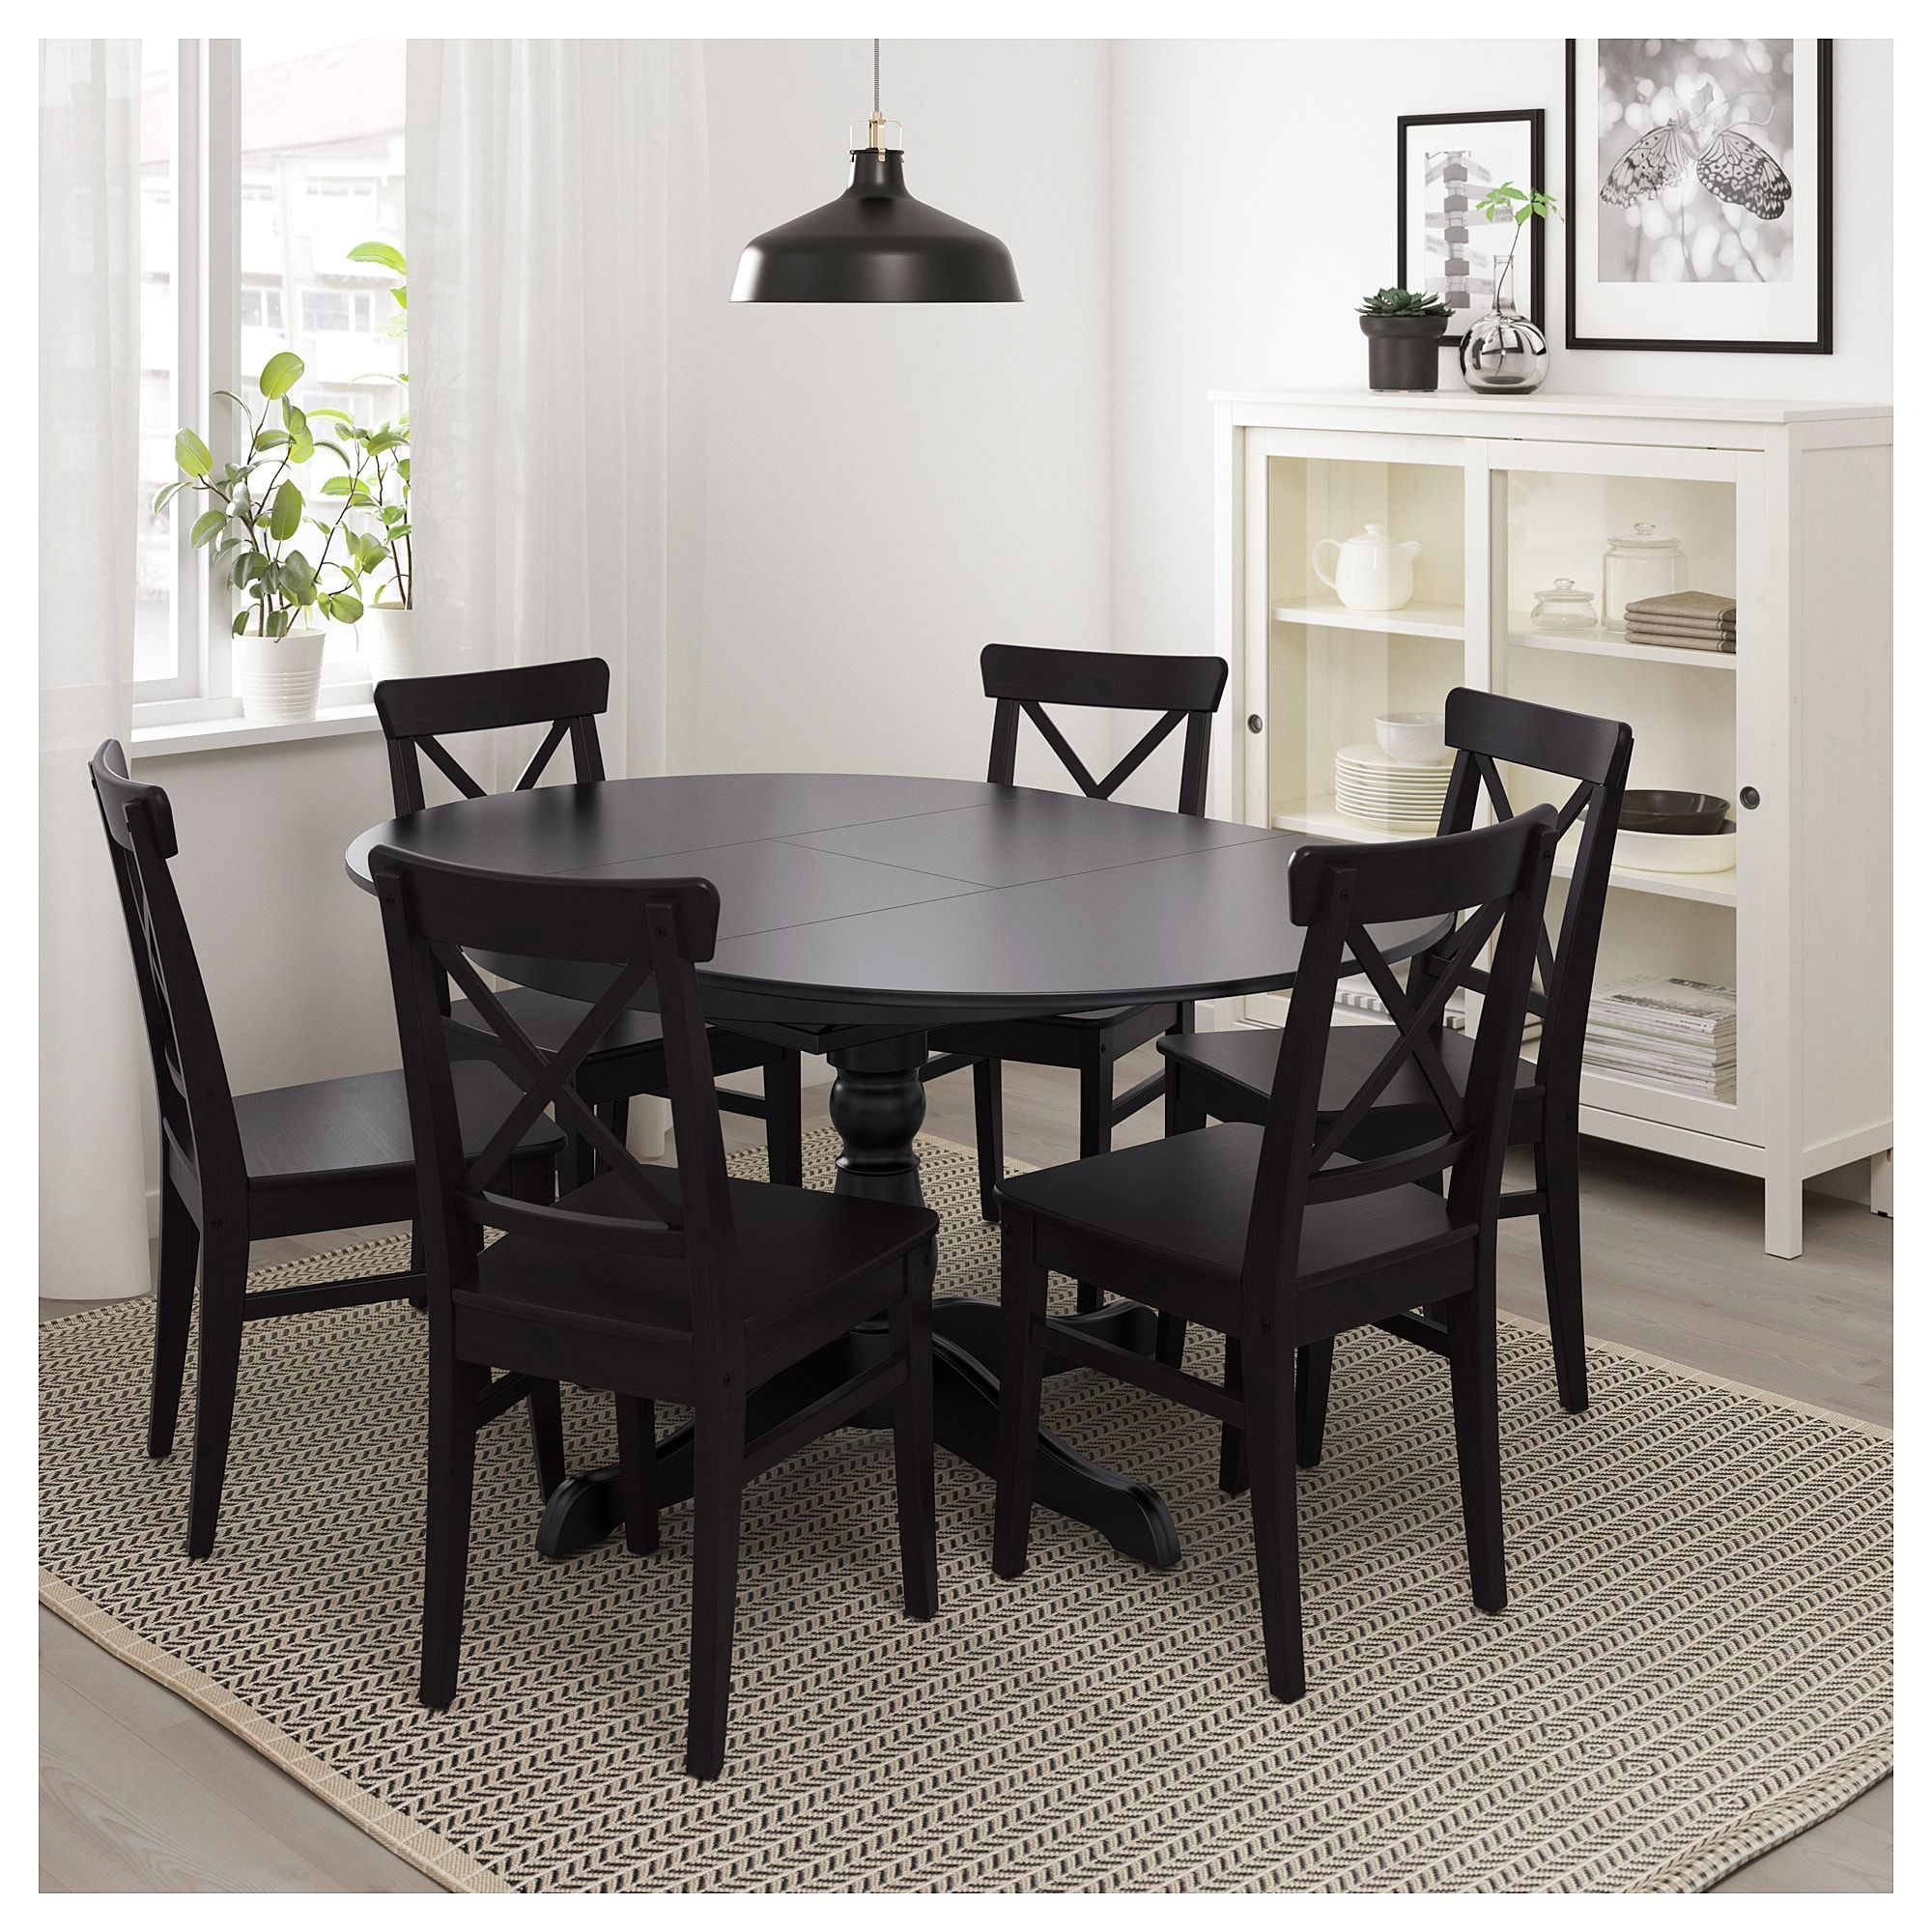 best website 1ff69 7baf6 INGATORP Extendable table, black in 2019 | Products | Ikea ...